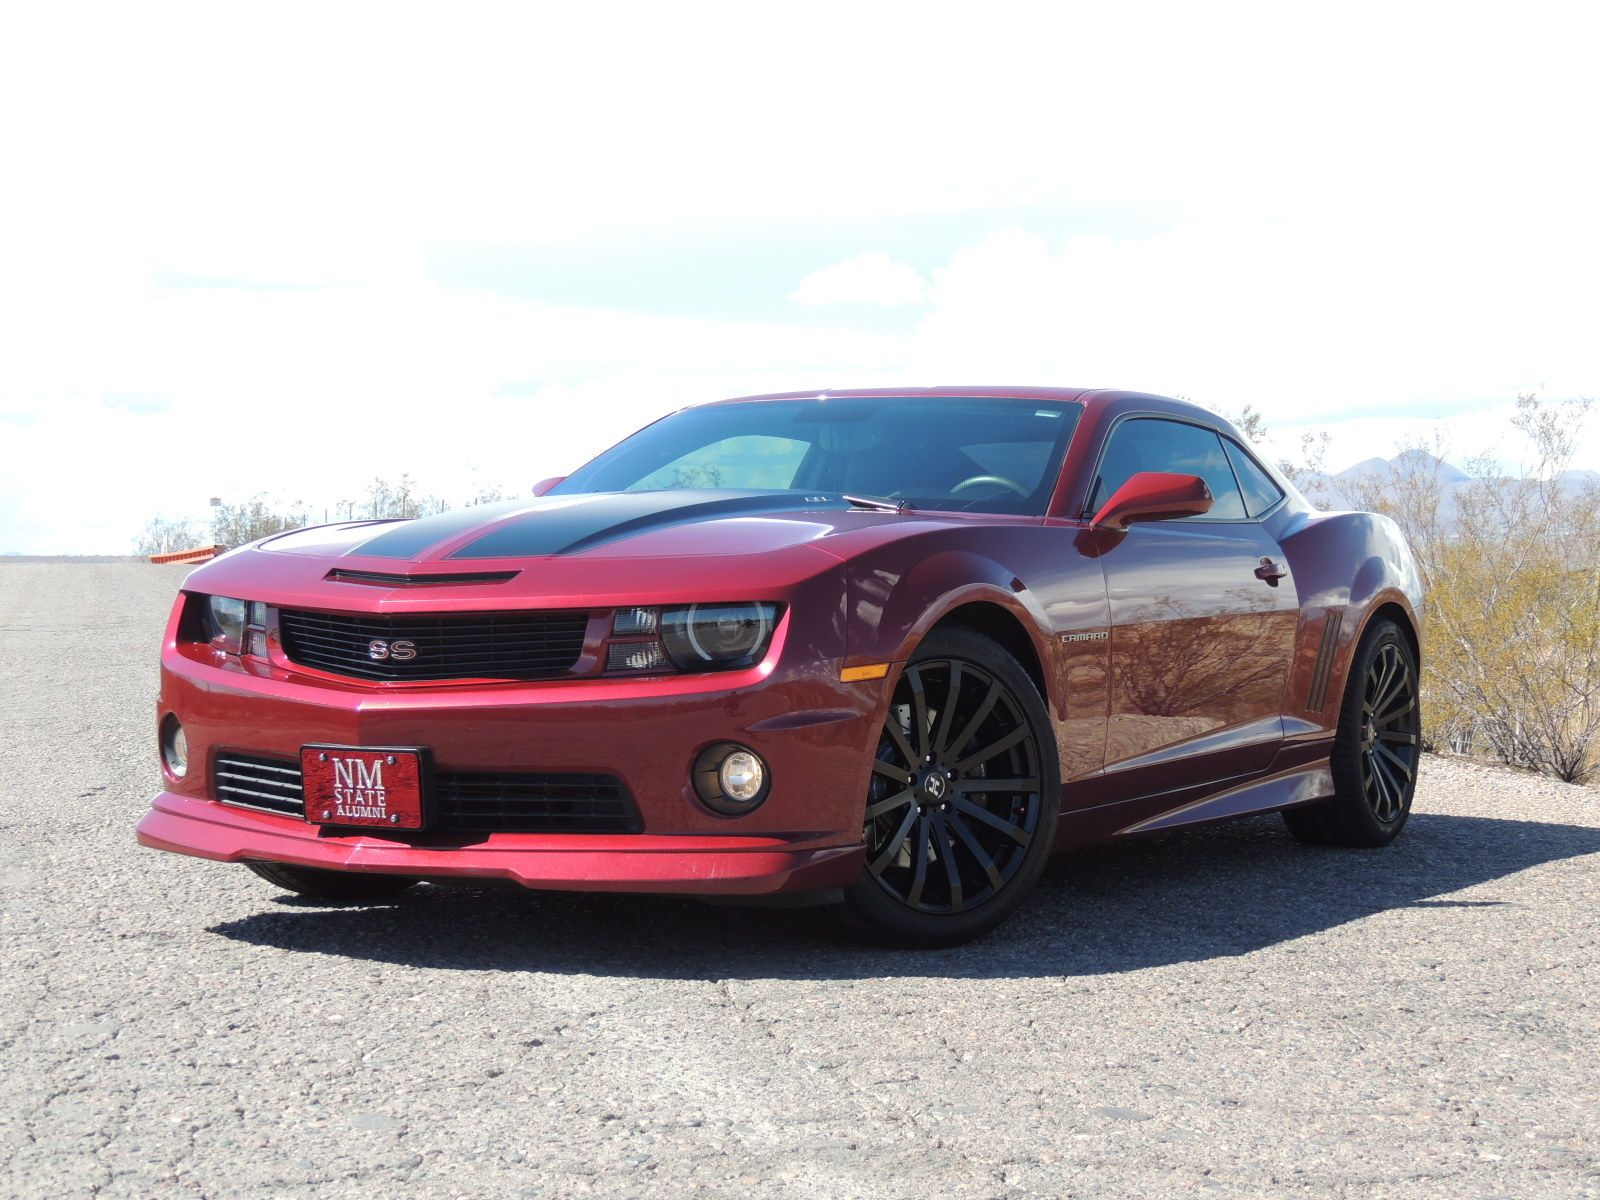 2010 2ss rs chvevy camaro red jewel nice rides pinterest. Black Bedroom Furniture Sets. Home Design Ideas